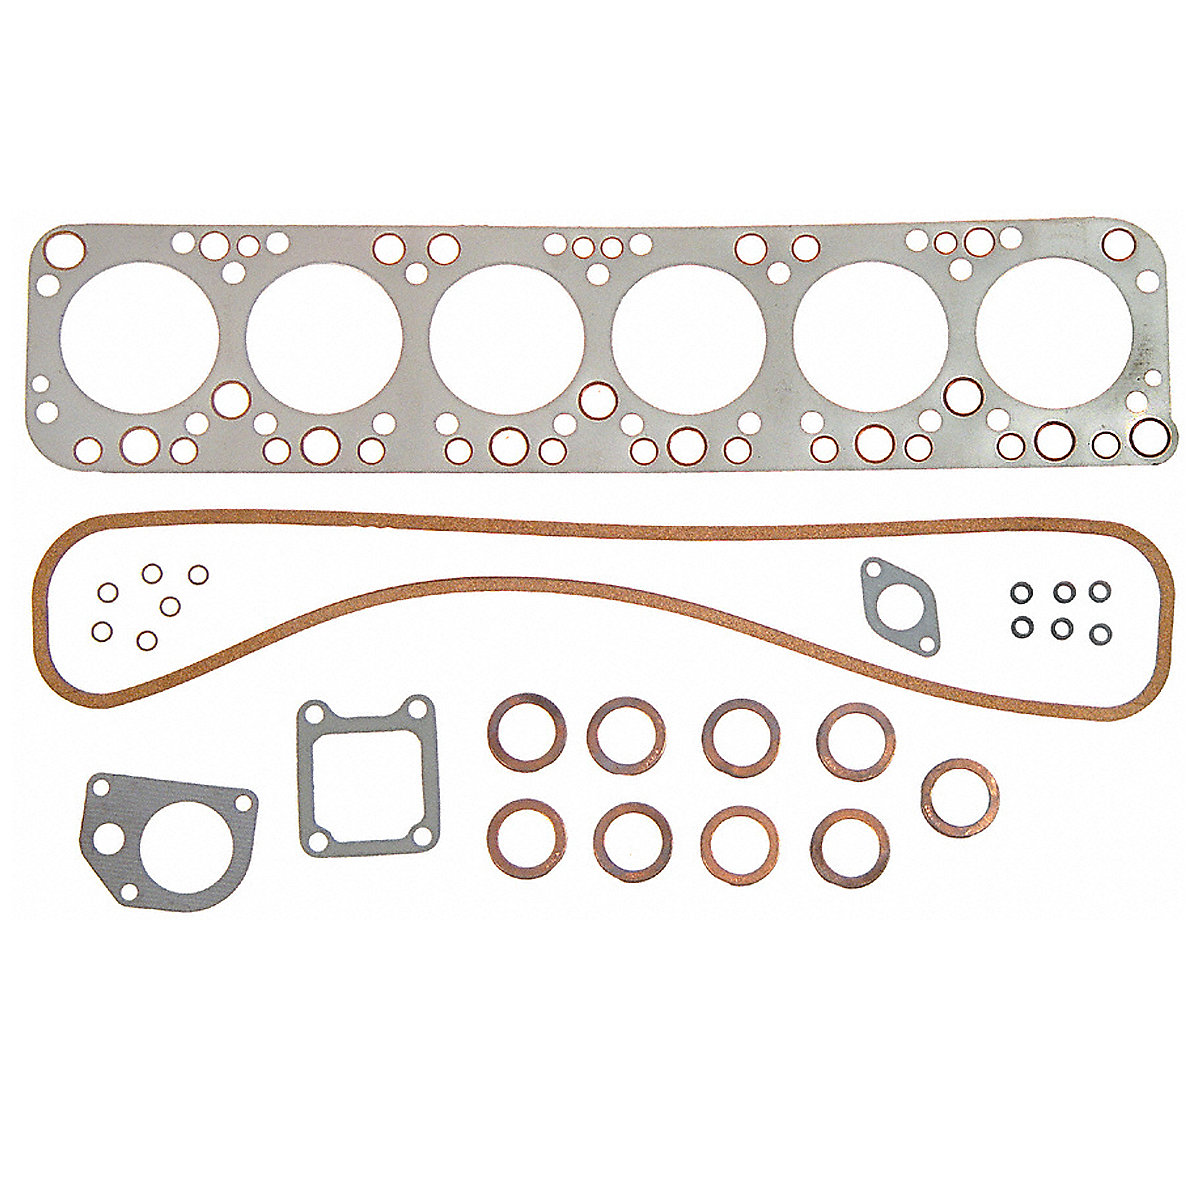 Head Gasket Set For Oliver: Super 88, 88, 880